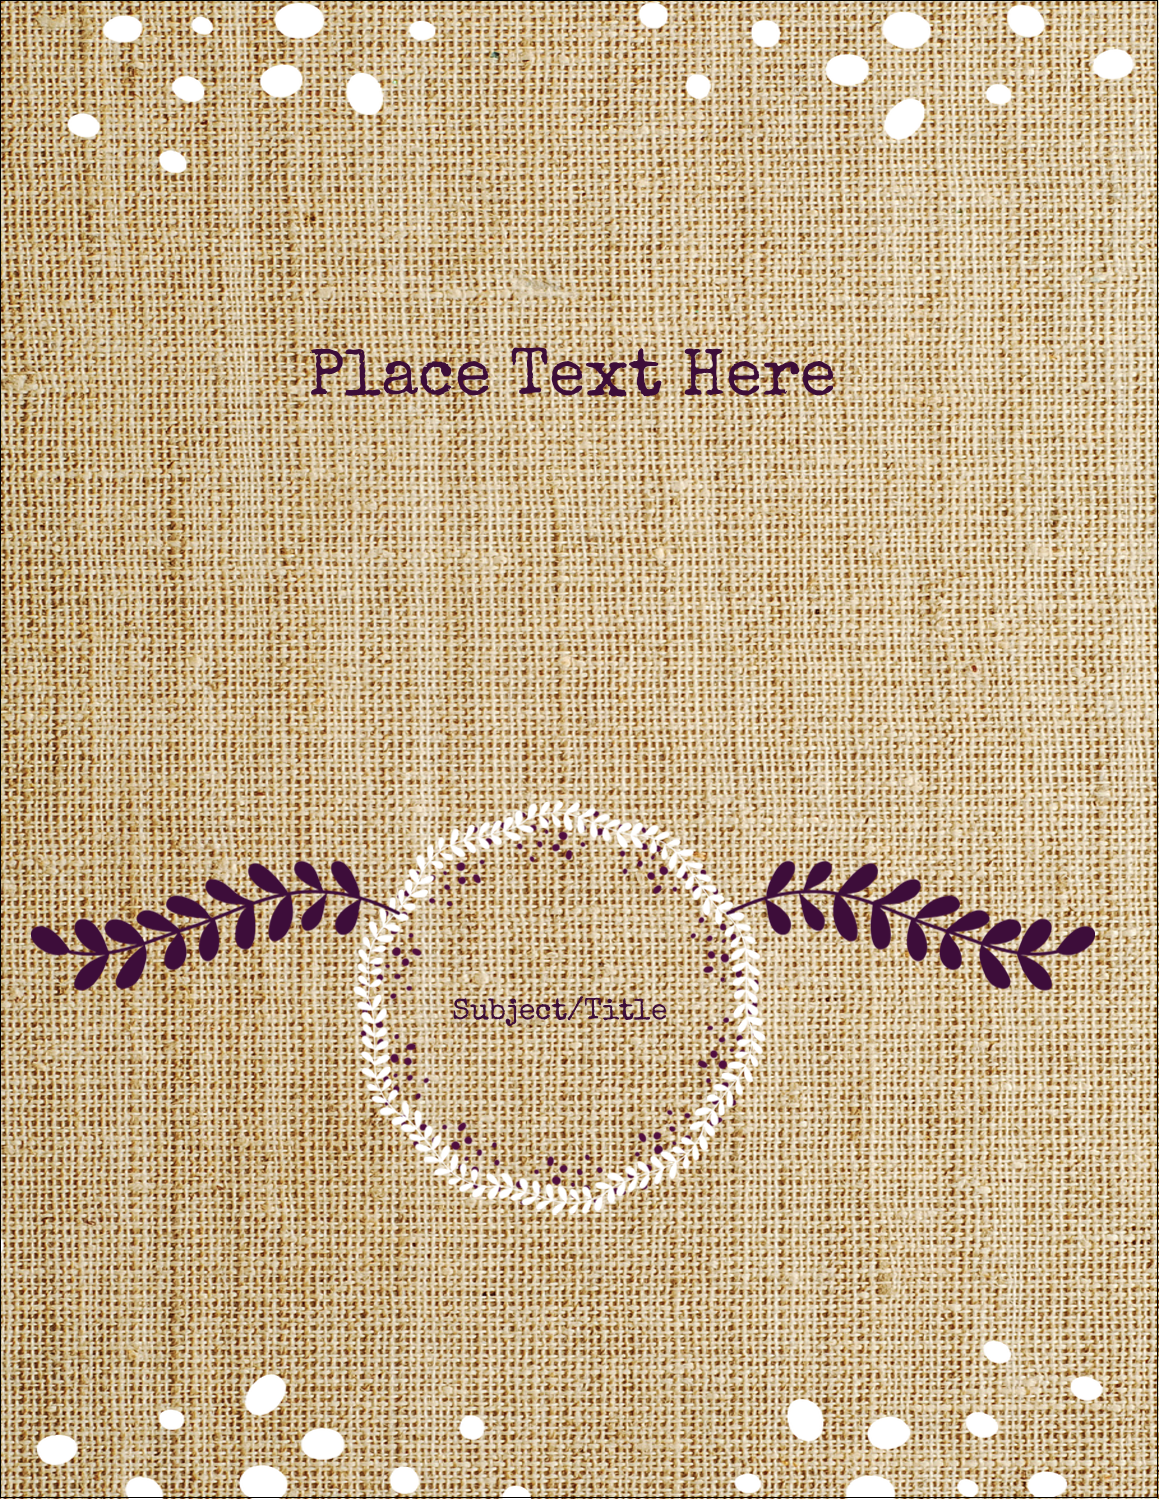 Get rustic yet elegant at your next event with the Fringed Burlap pre-design template.